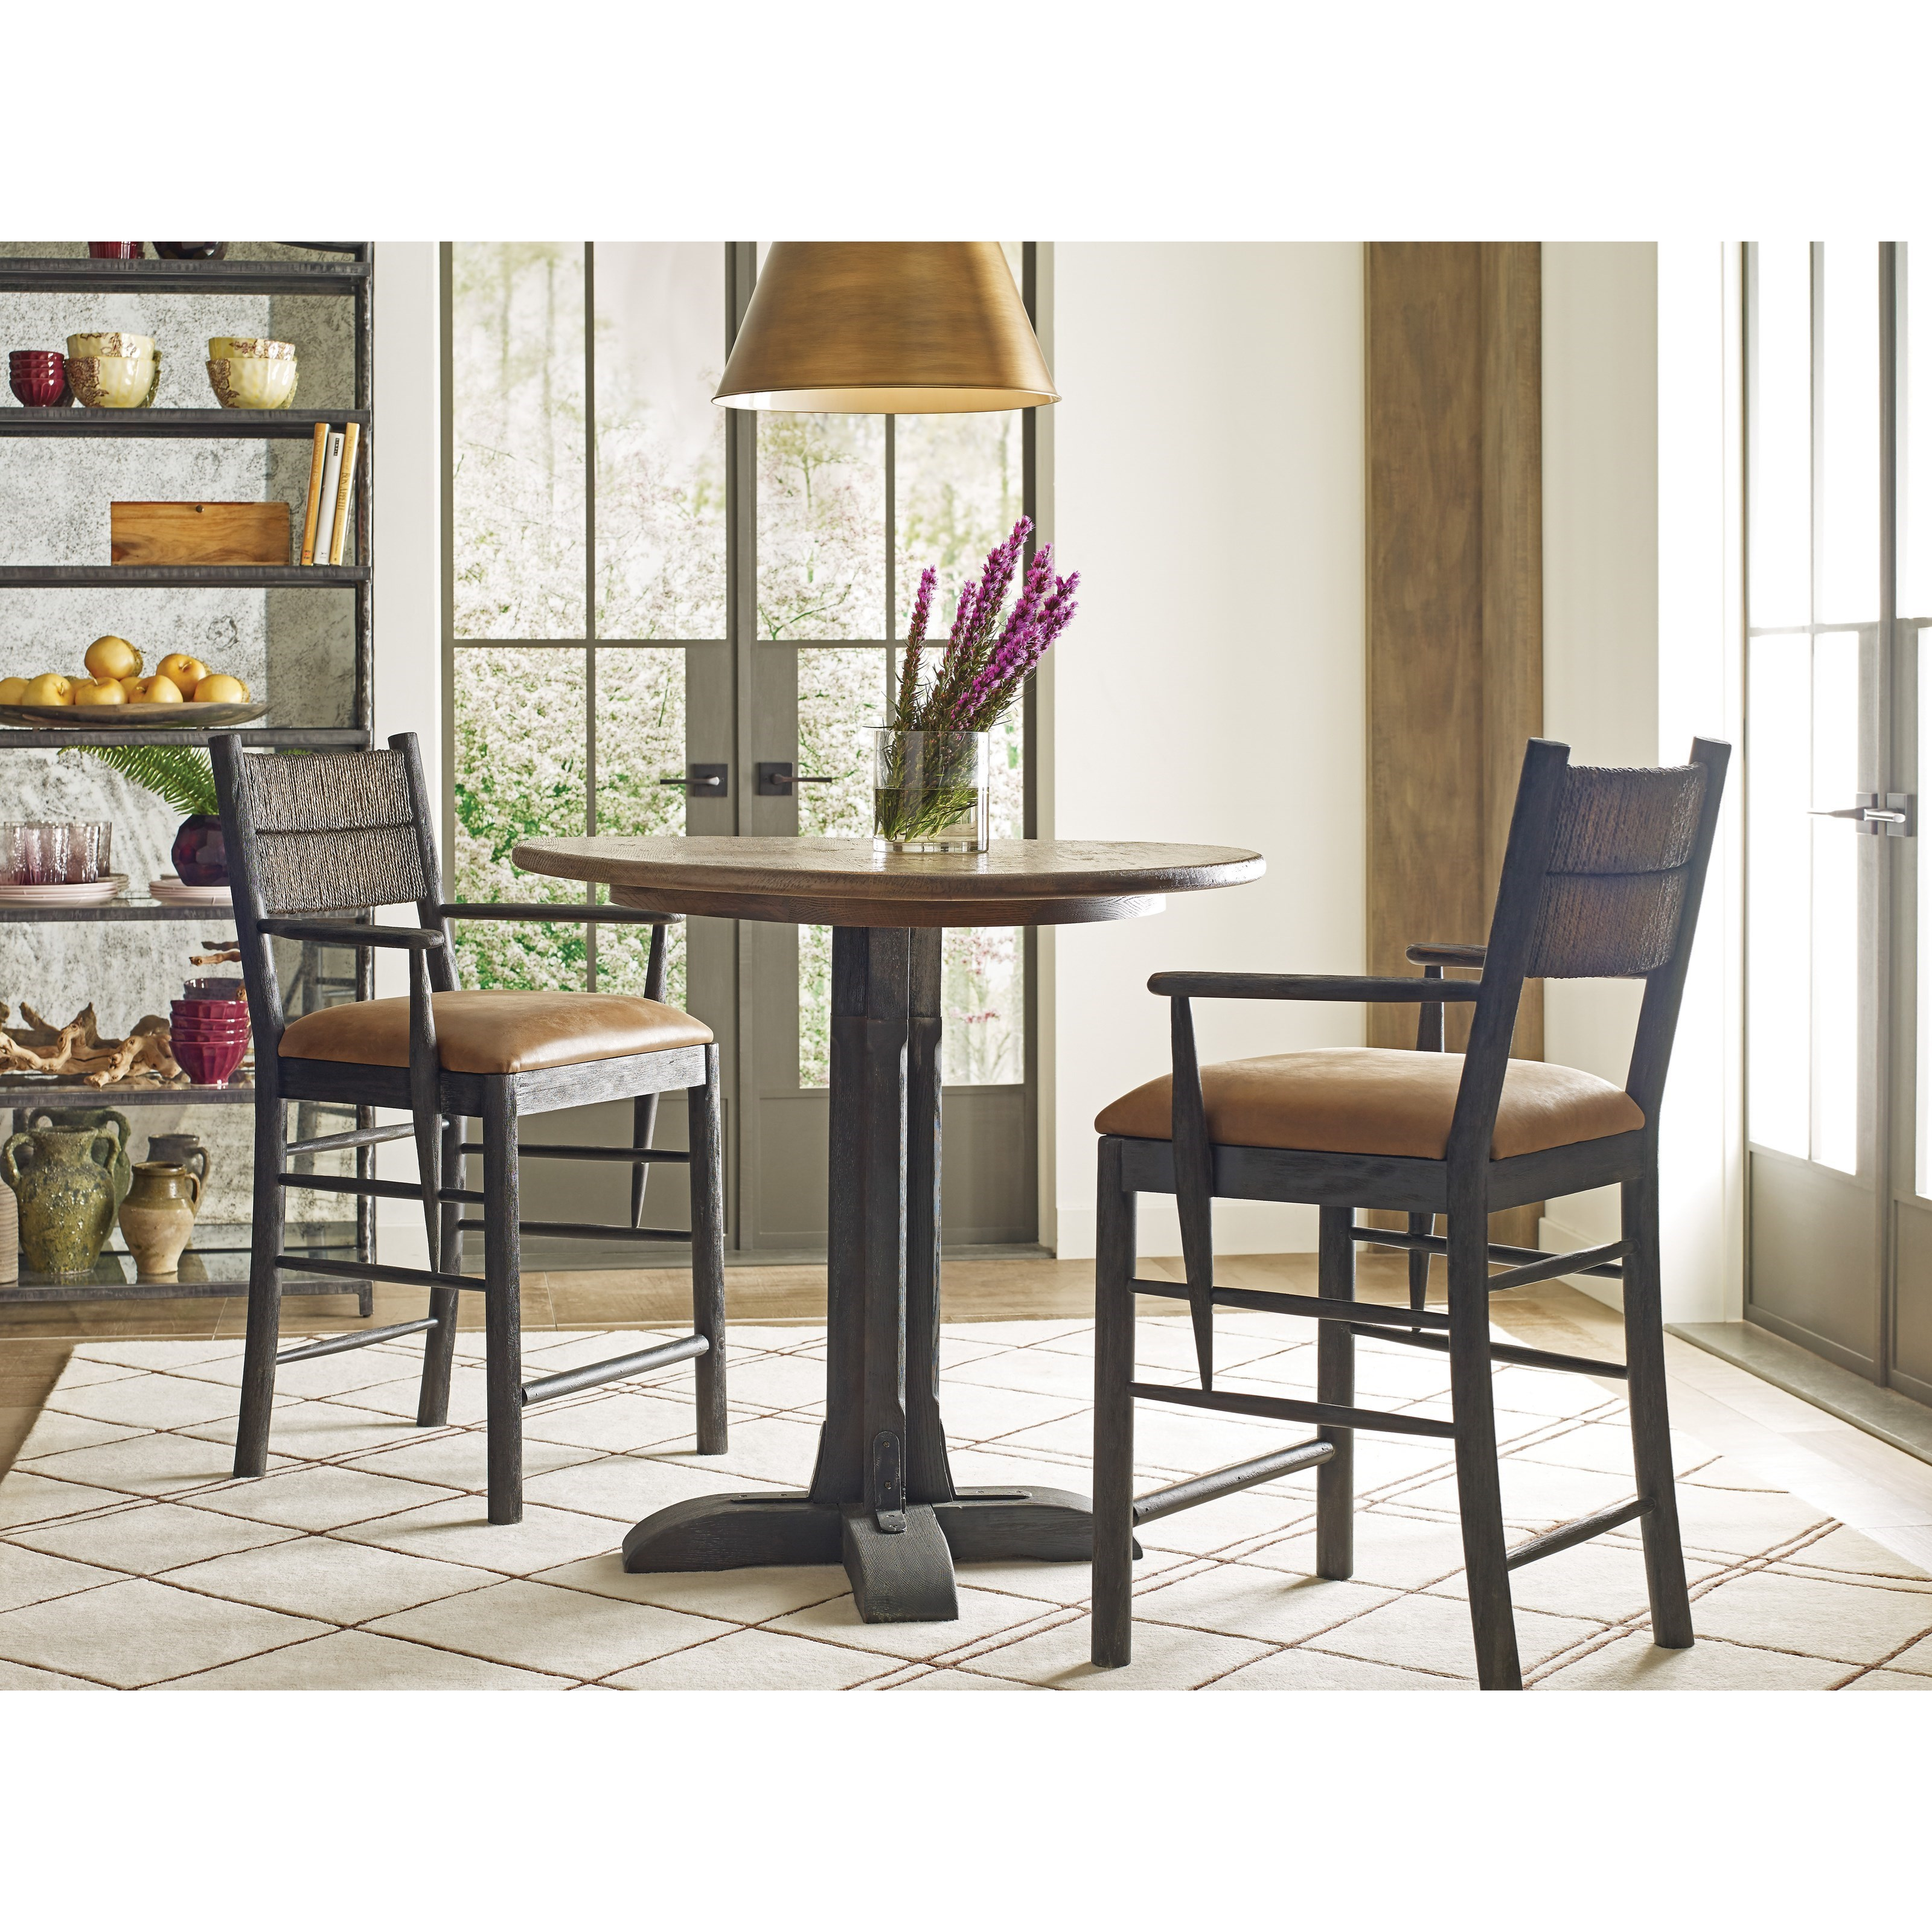 Trails Three Piece Dining Set by Kincaid Furniture at Johnny Janosik